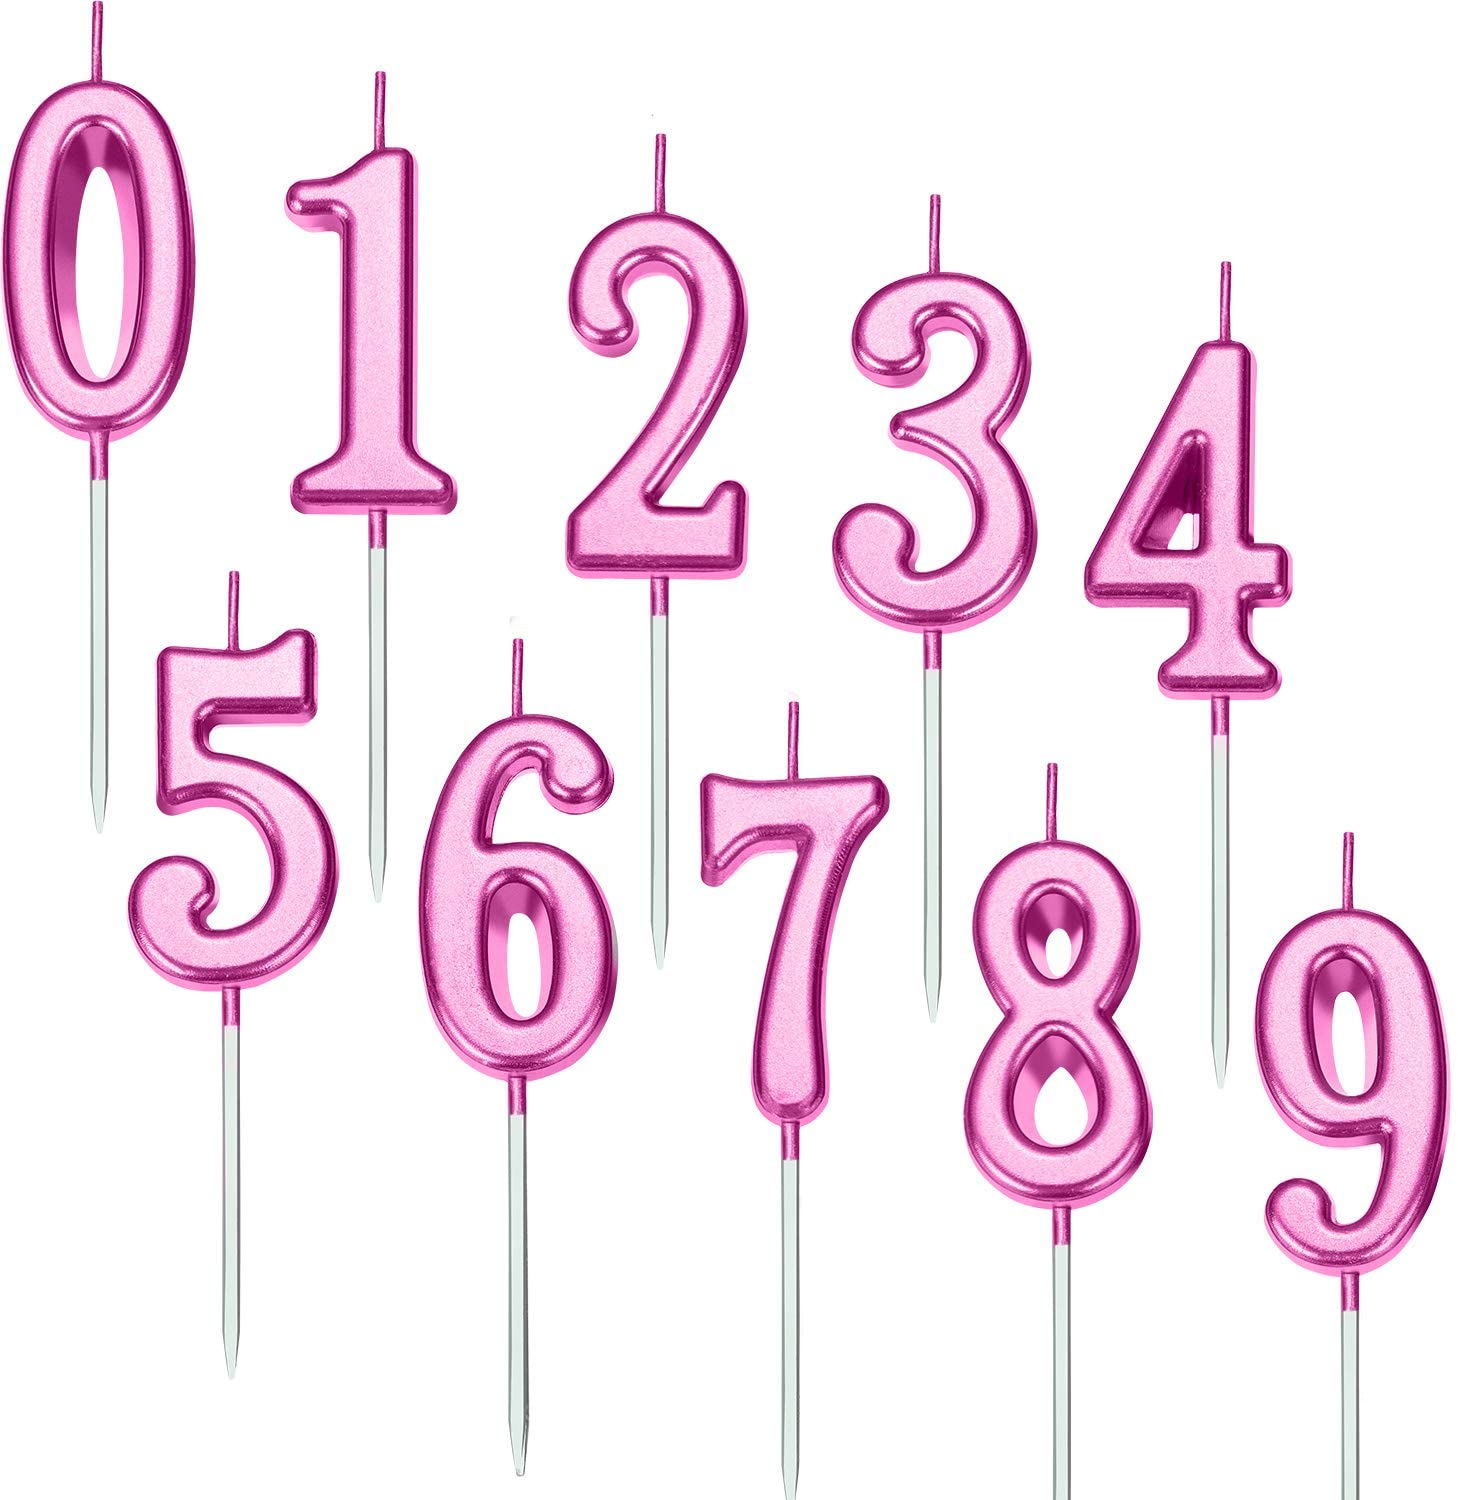 Yaomiao 10 Pieces Birthday Numeral Candles Cake Numeral Candles Number 0-9 Glitter Cake Topper Decoration for Birthday Party Favor (Purple)